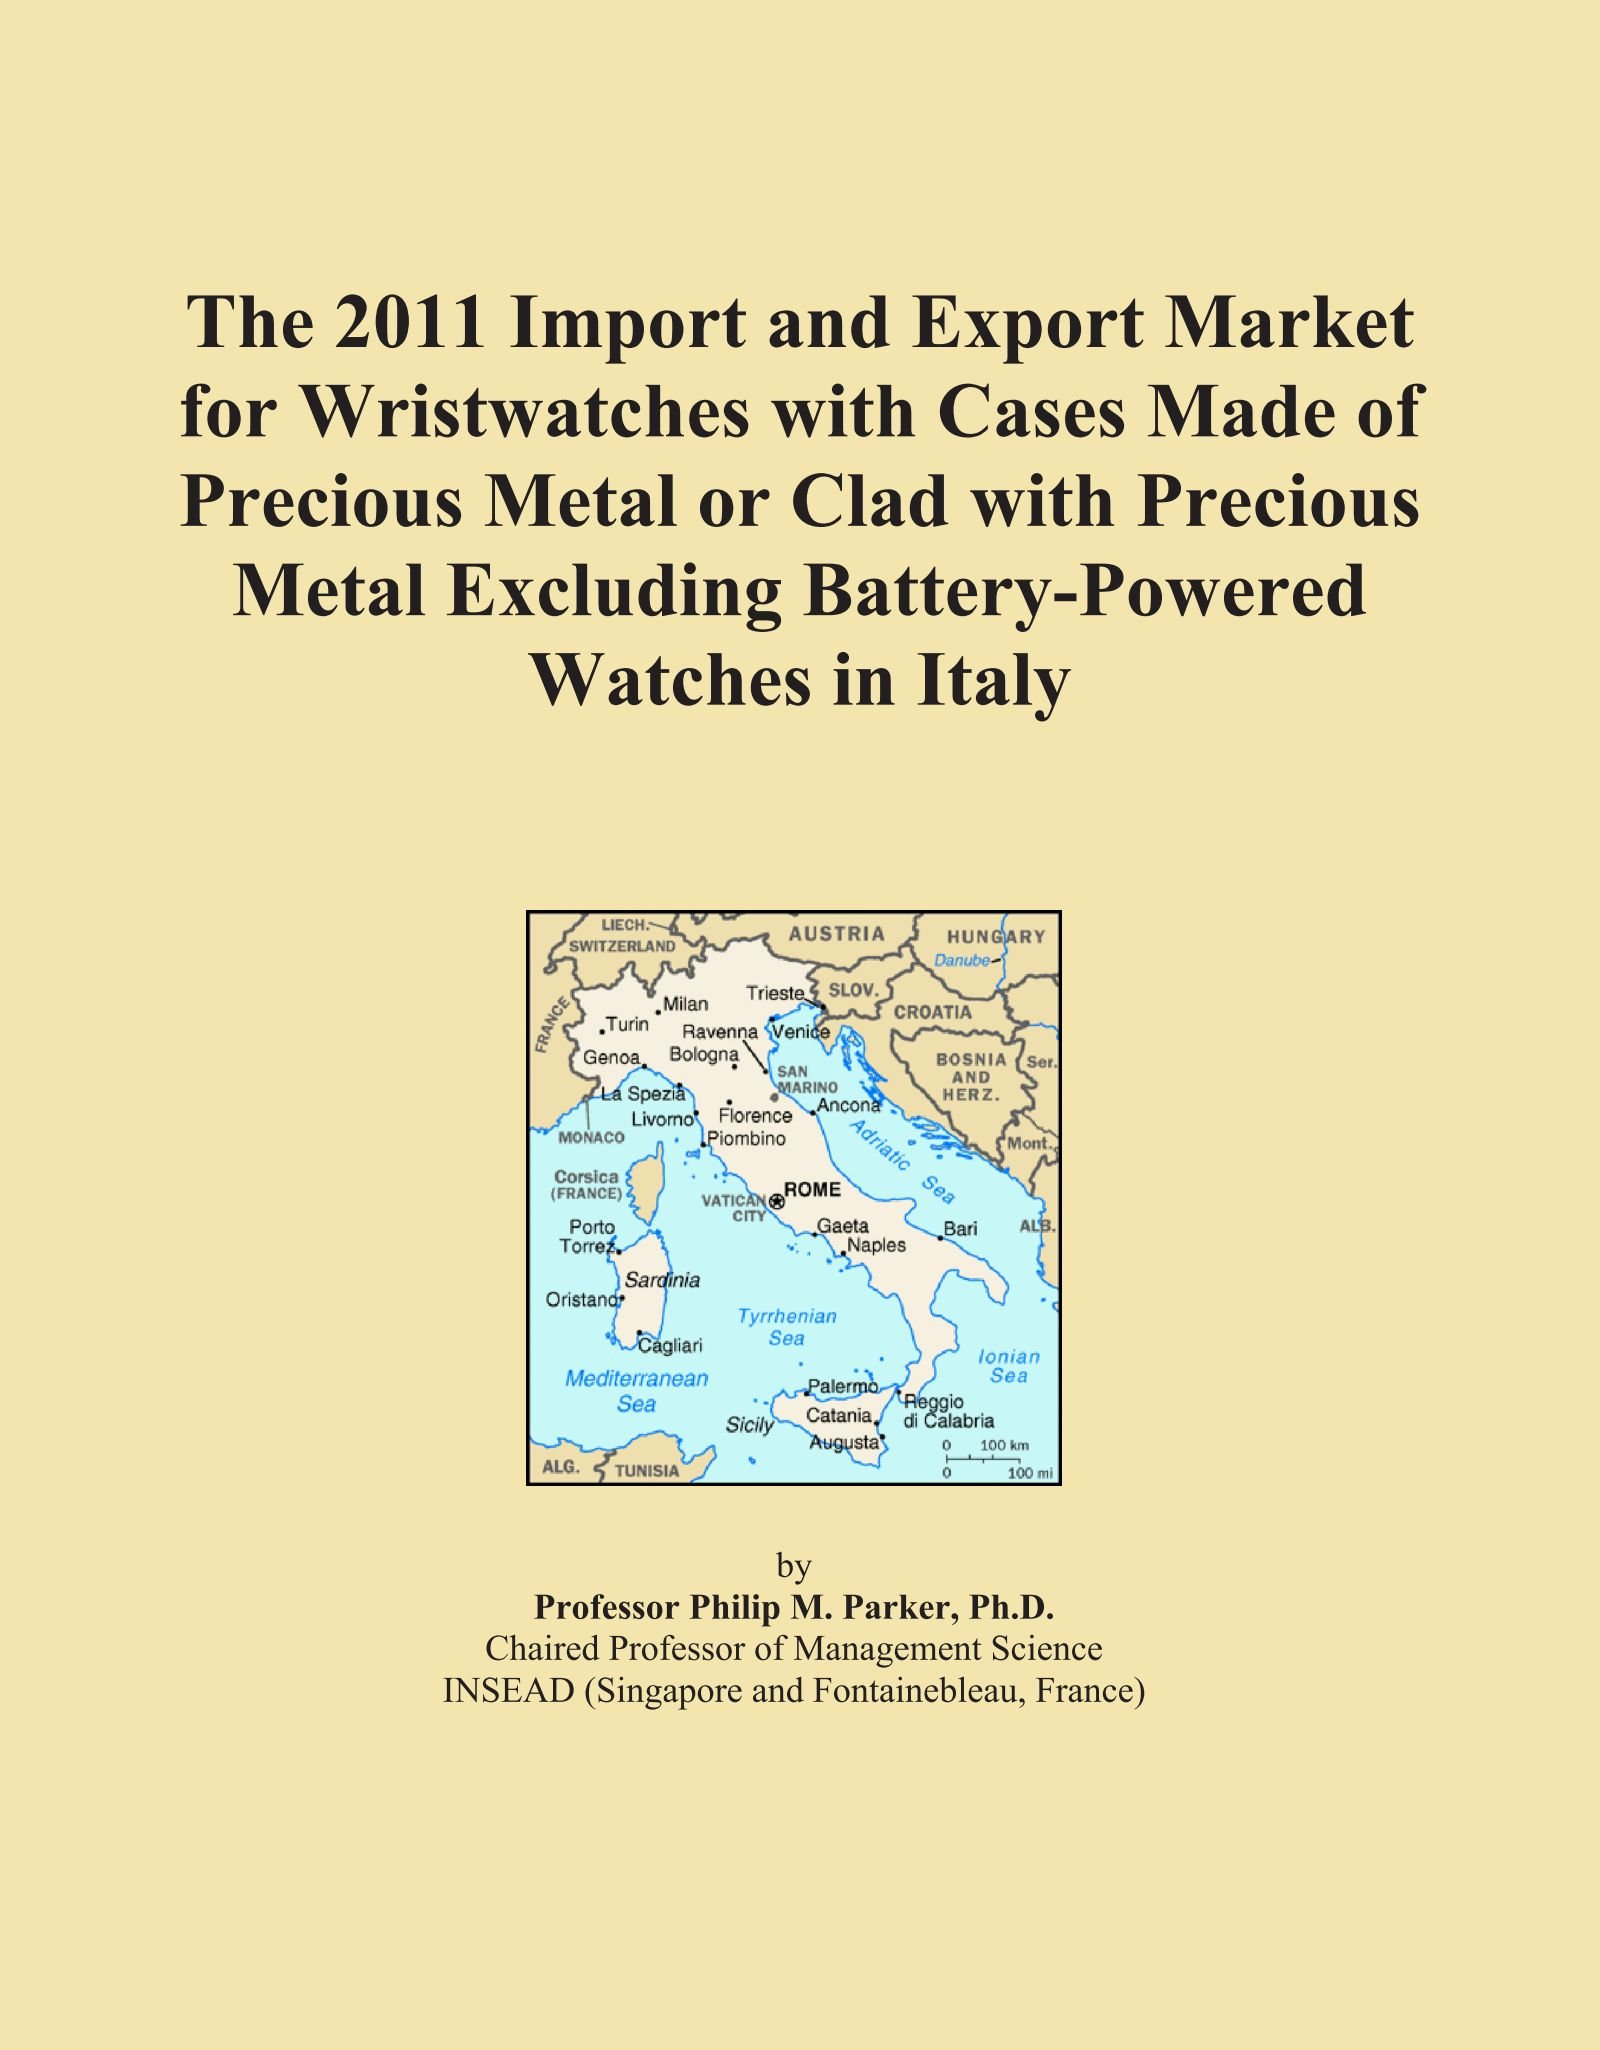 The 2011 Import and Export Market for Wristwatches with Cases Made of Precious Metal or Clad with Precious Metal Excluding Battery-Powered Watches in Italy pdf